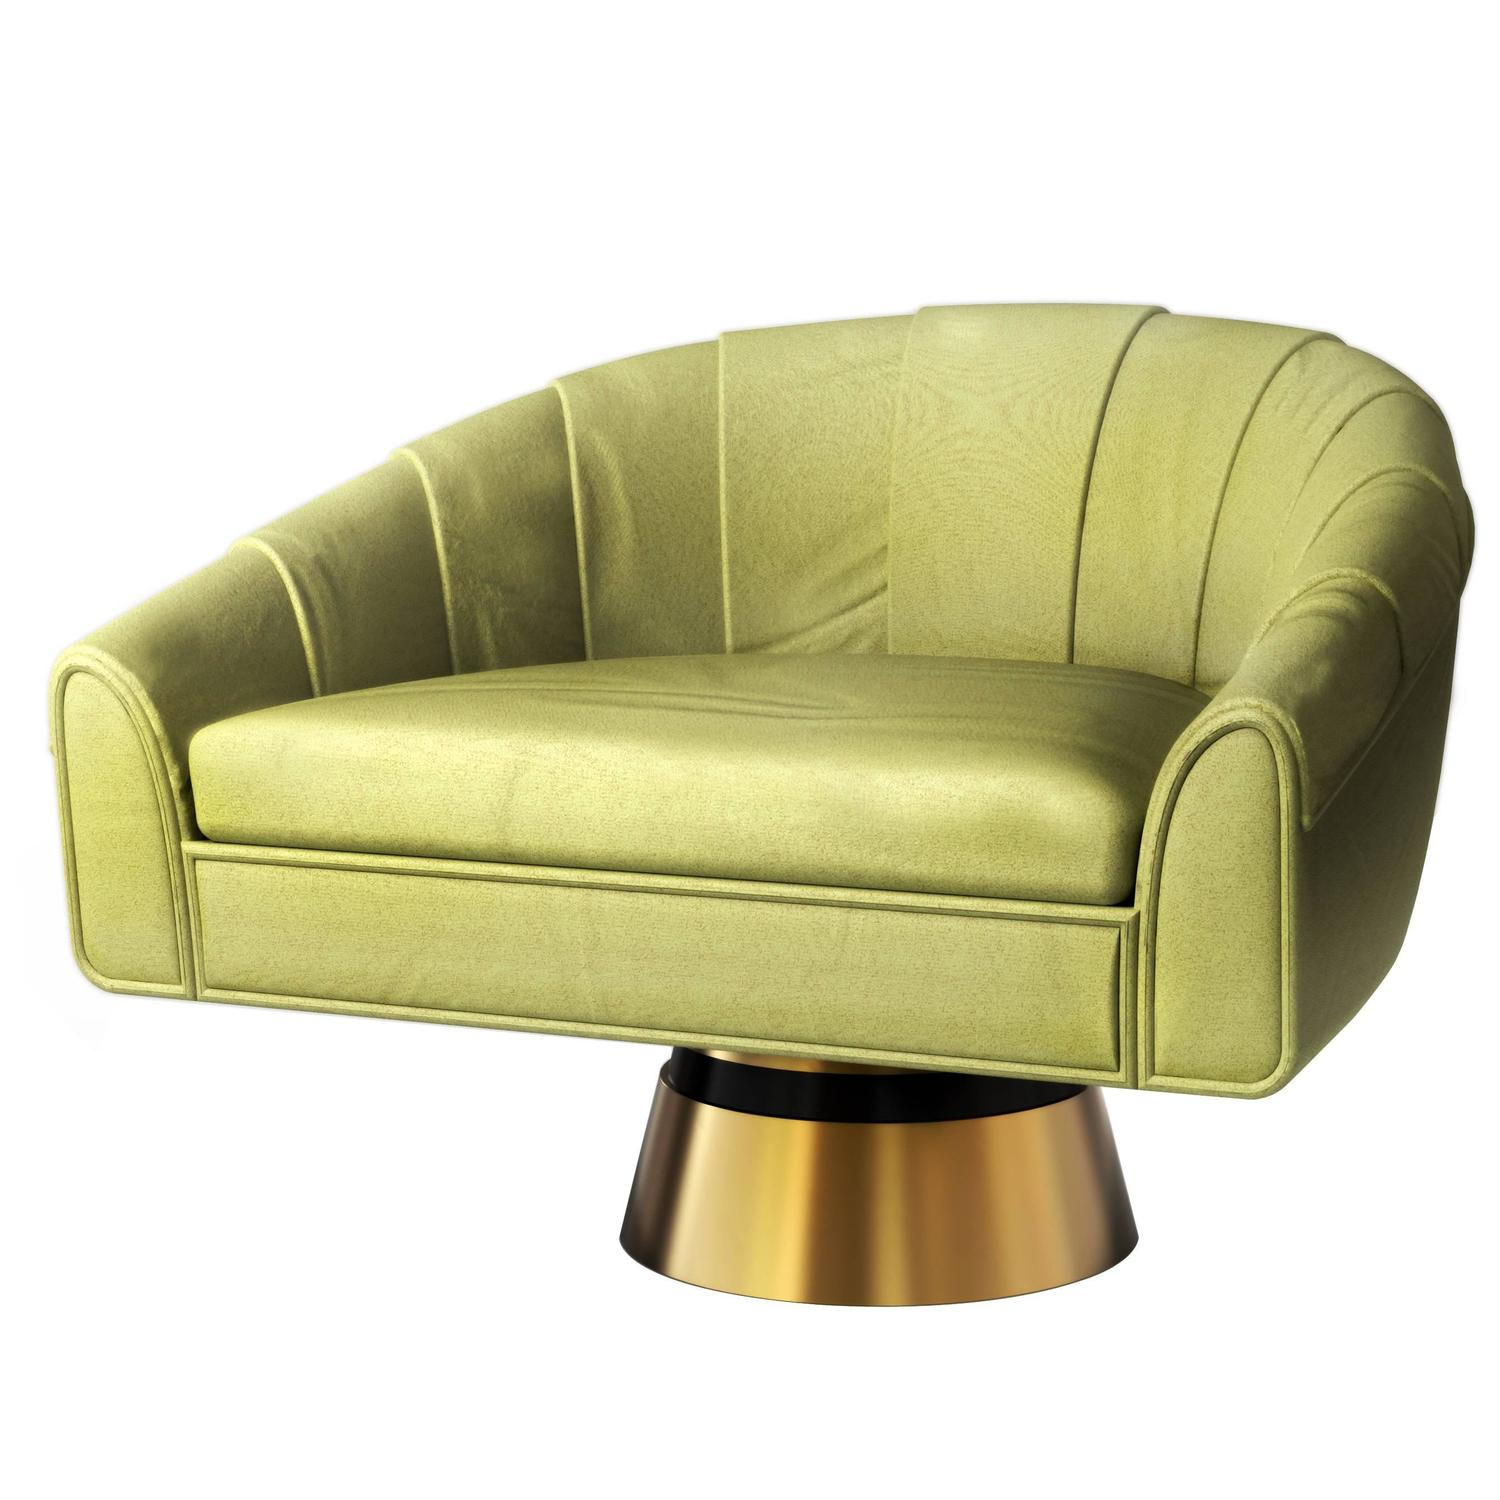 Bogarde Leather And Brass Mid Century Modern Celadon Green Rotating Armchair  For Sale At 1stdibs